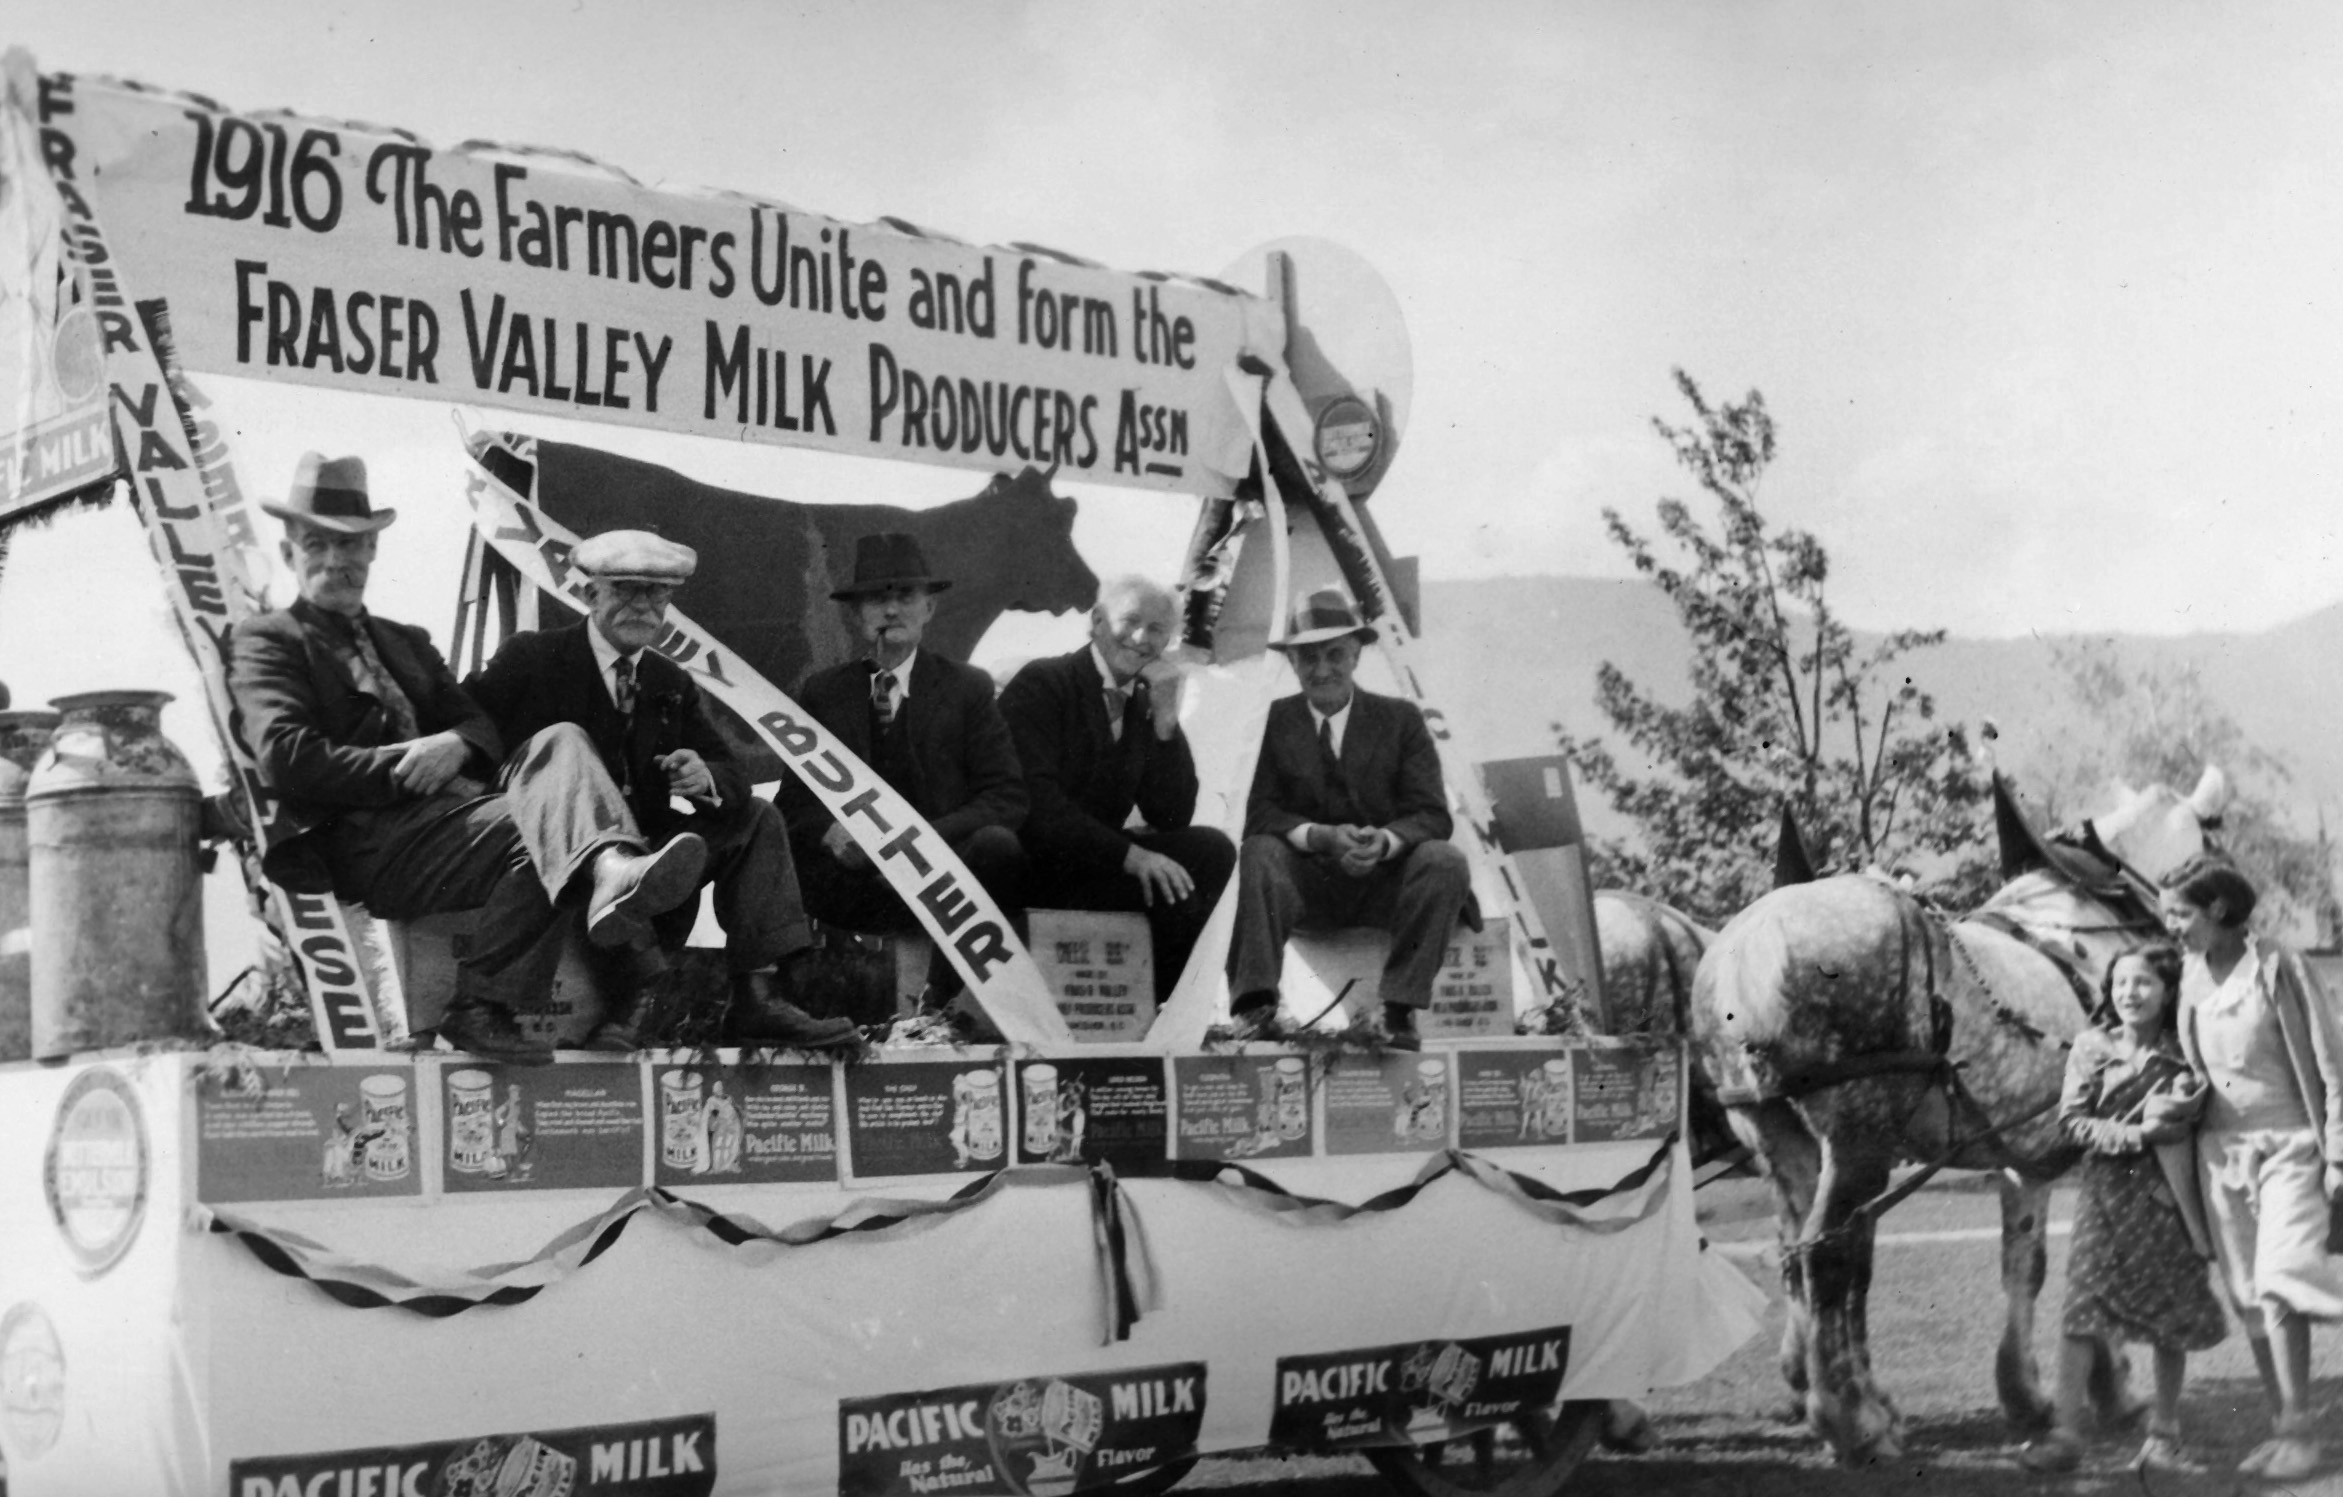 Black and white photograph of five men on a parade float pulled by a team of horses. There is a sign on the float, 1916 The Farmers Unite and form the Fraser Valley Milk Producers Assn. They are promoting Fraser Valley cheese, butter, and milk.